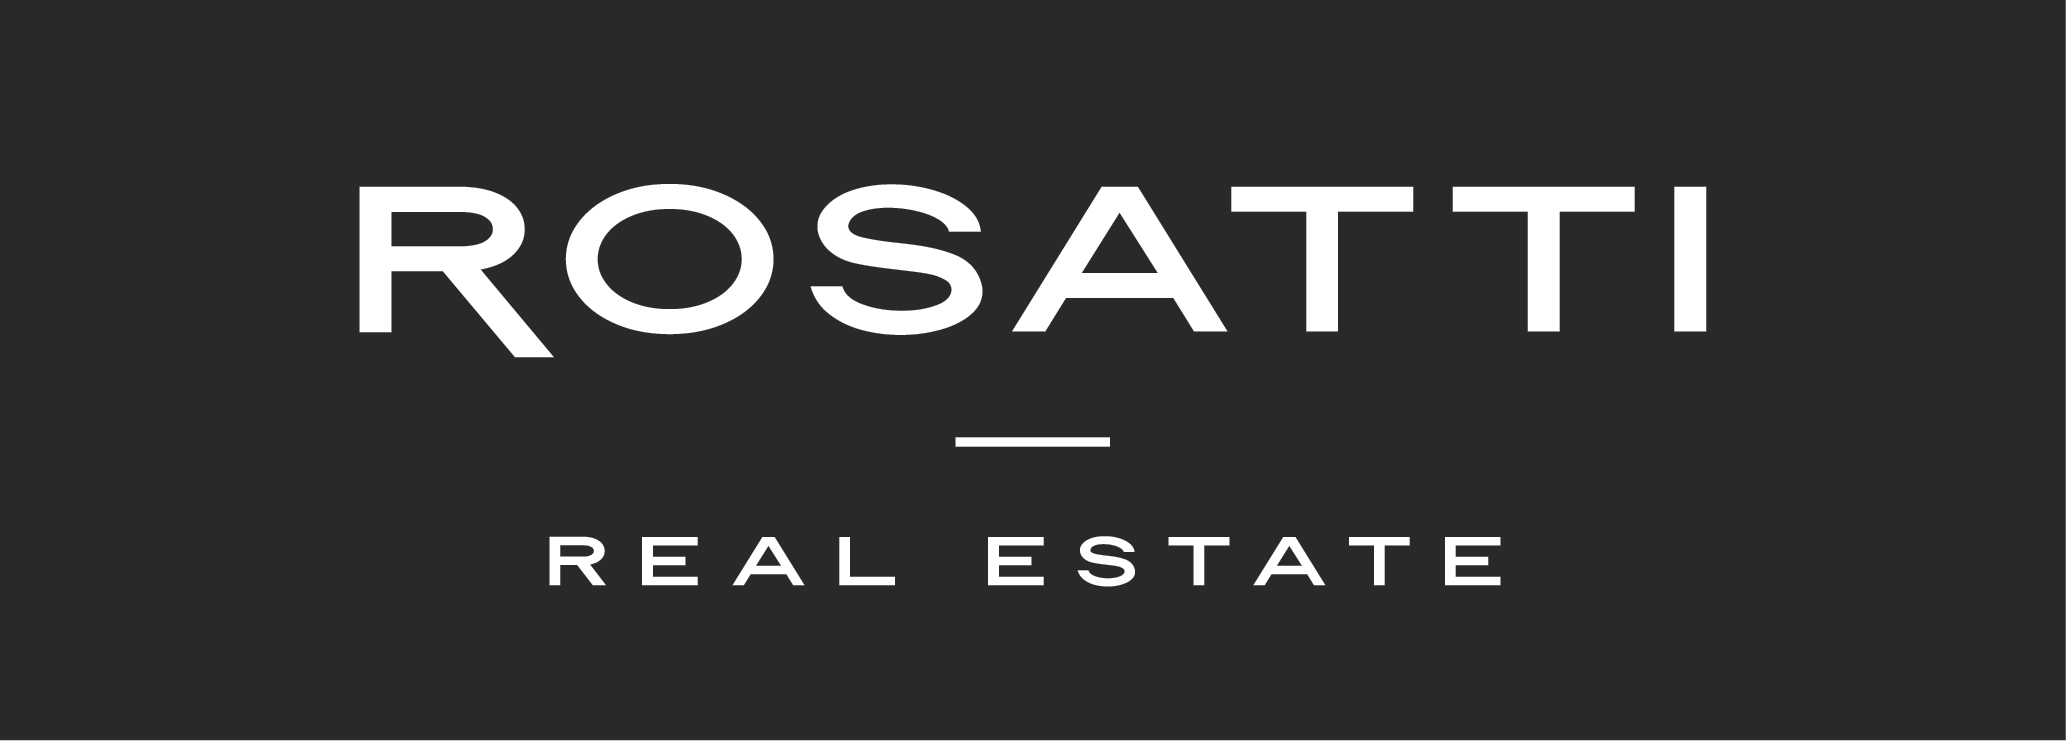 Rosatti Real Estate english